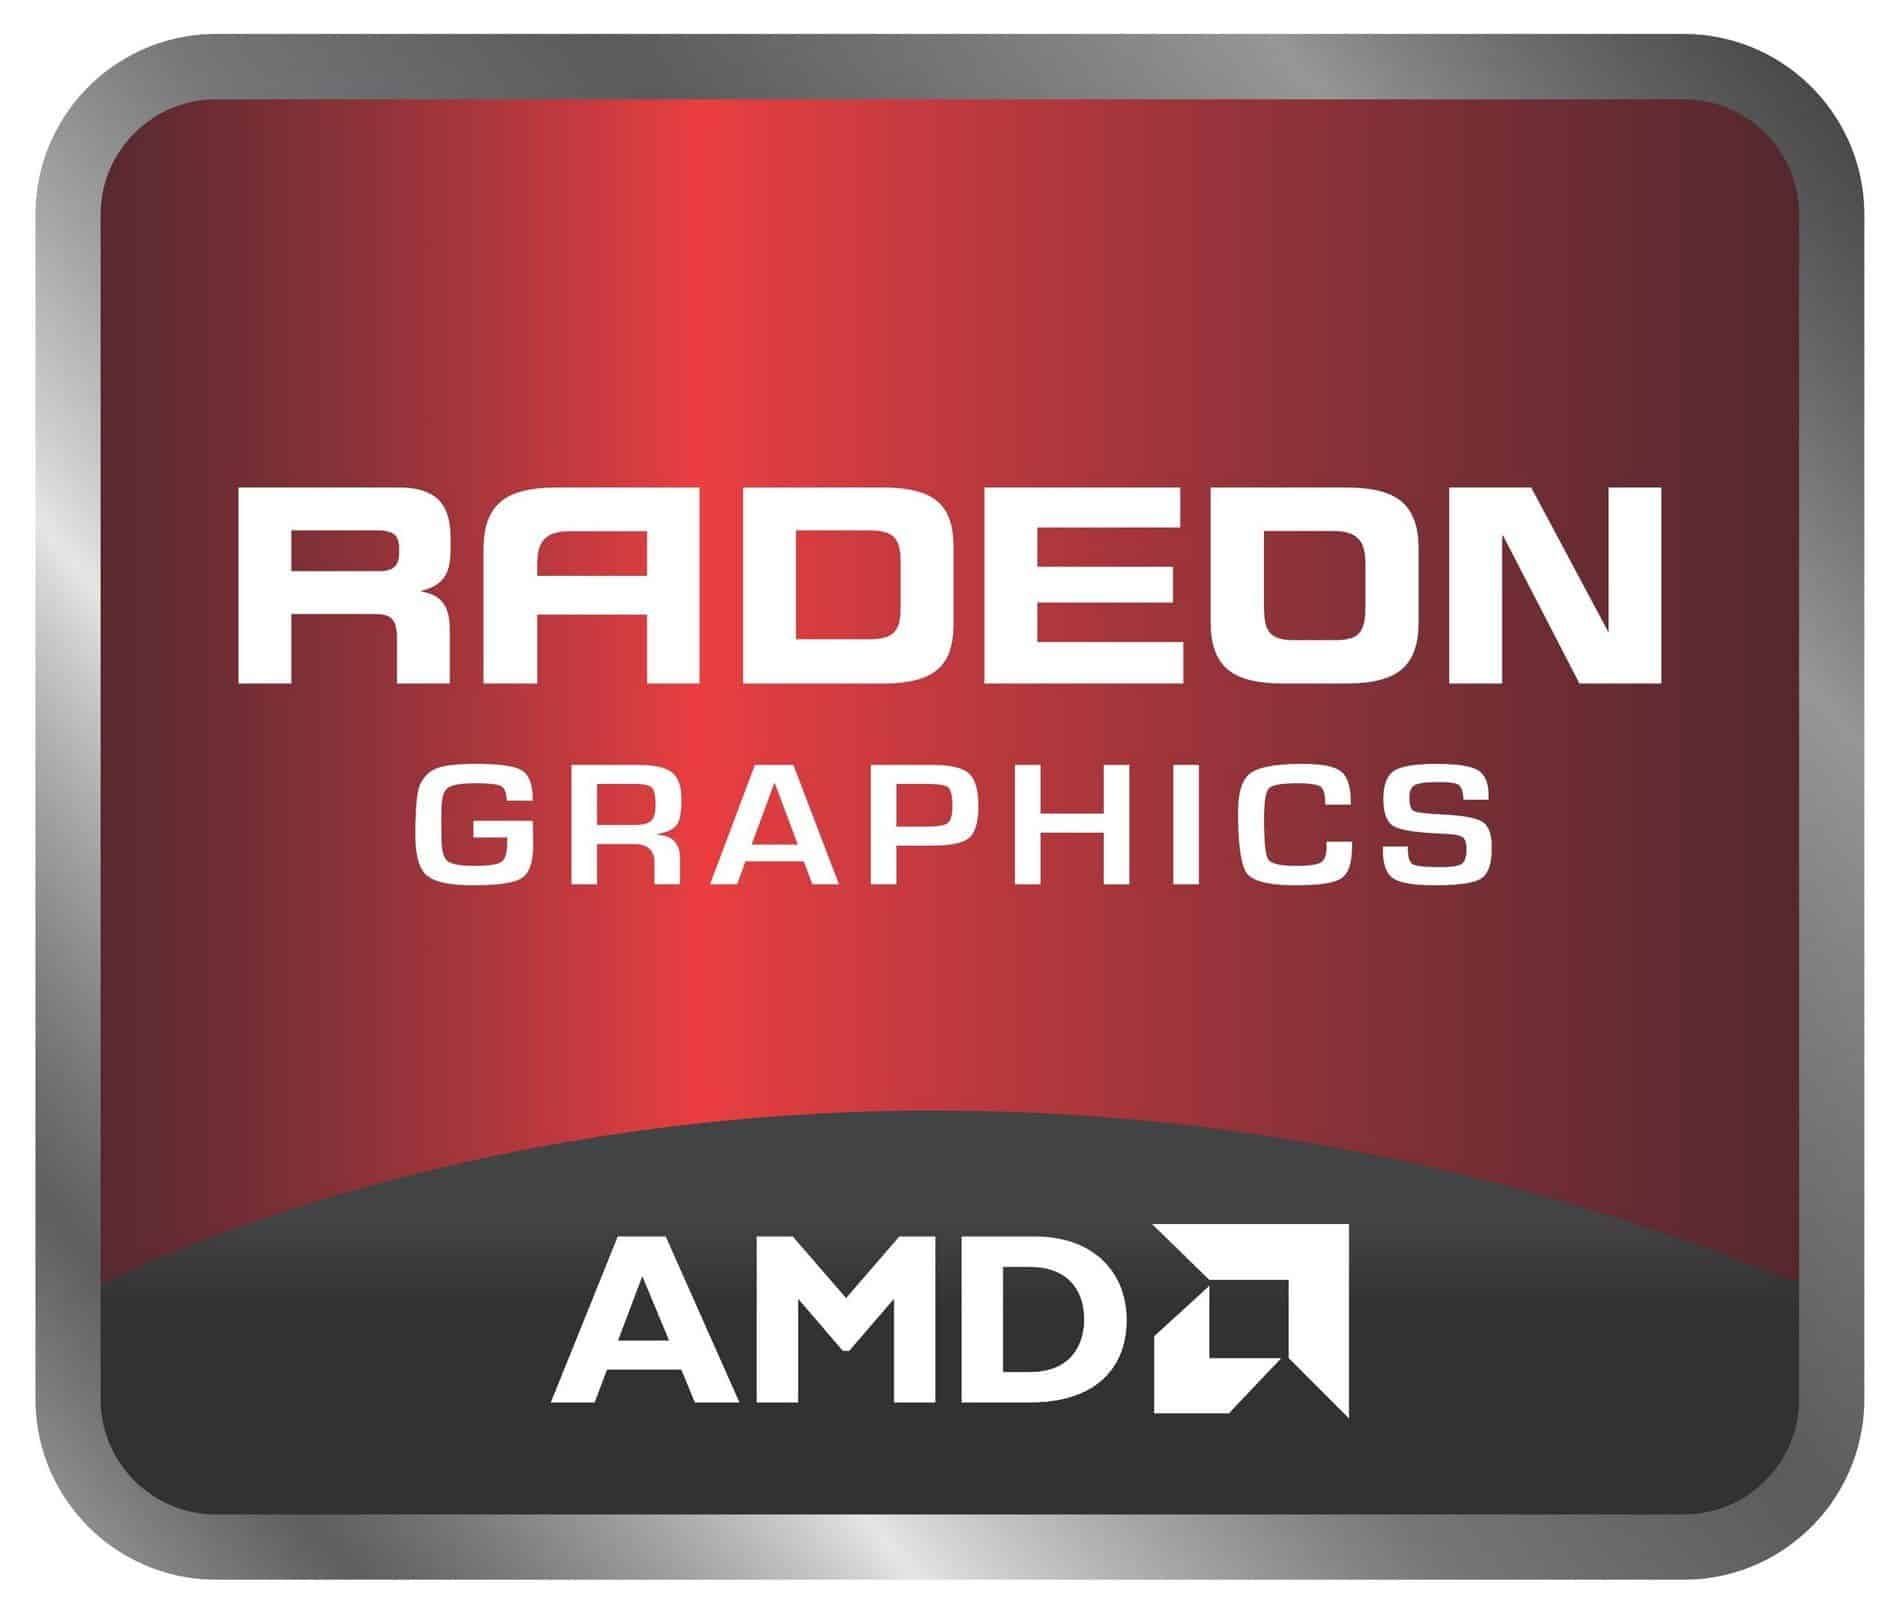 AMD Radeon Graphics Logo [EPS File] Vector EPS Free Download, Logo, Icons, Brand Emblems